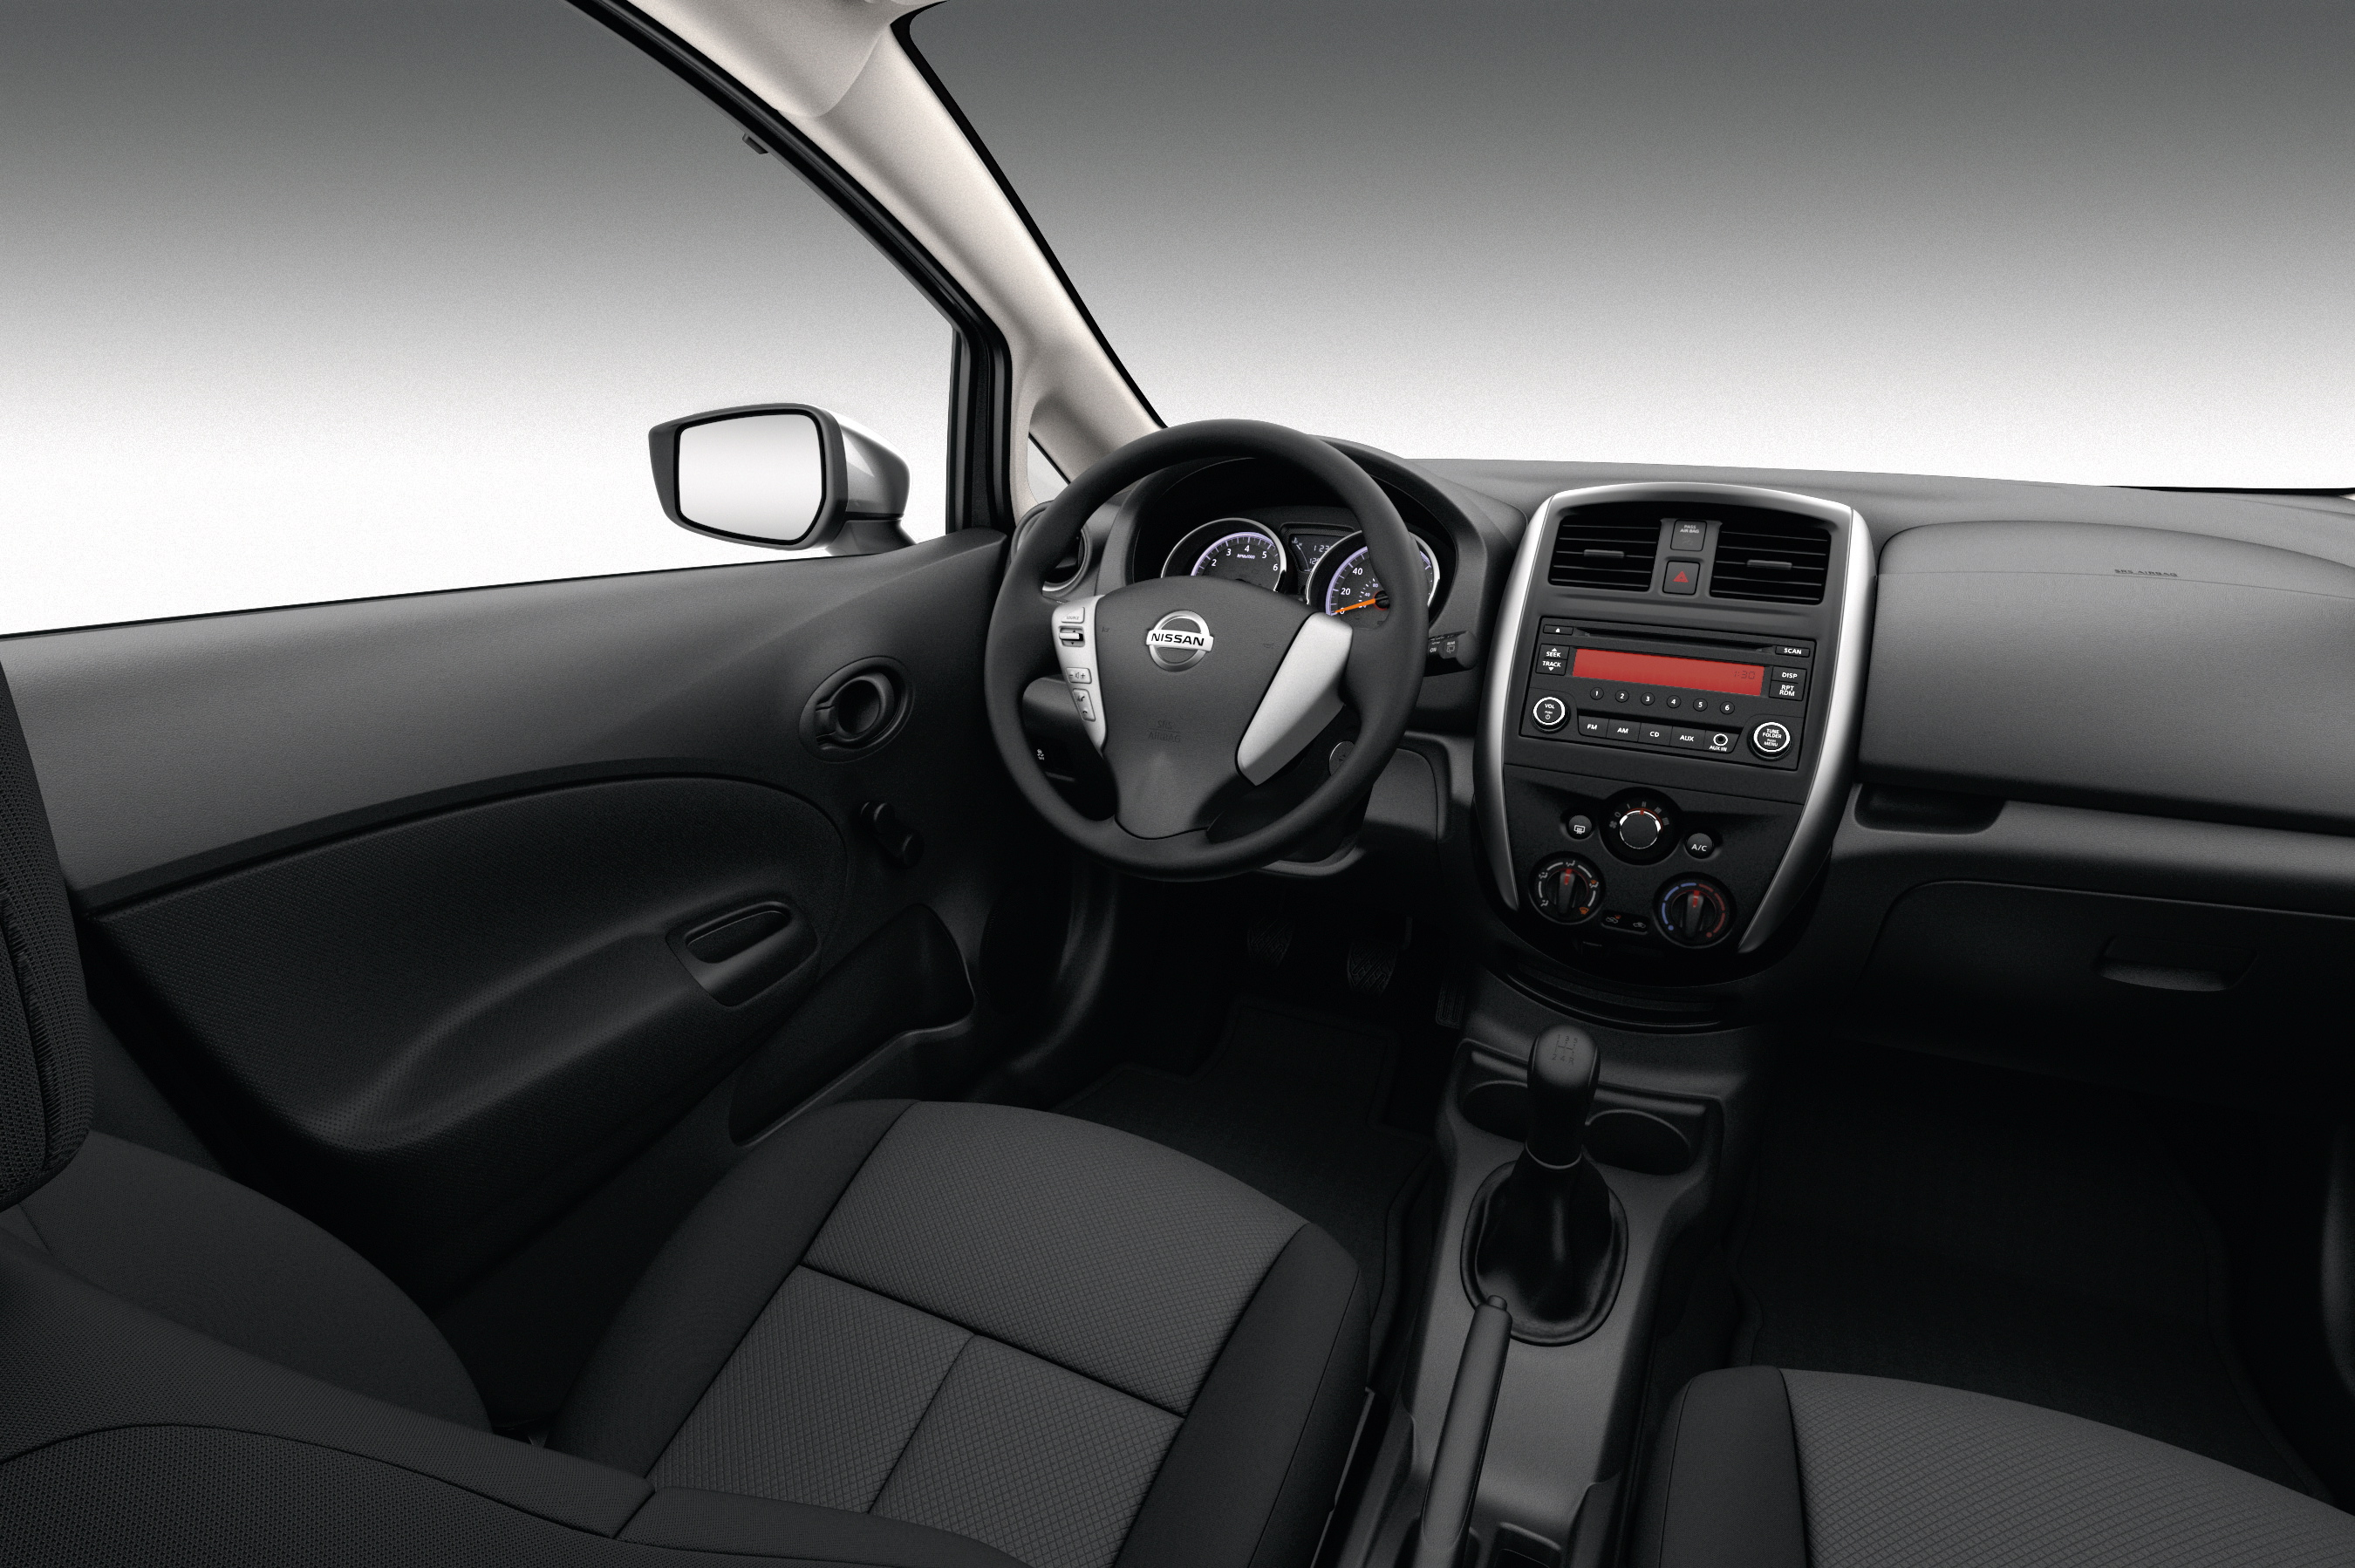 2015 nissan versa note interior. Black Bedroom Furniture Sets. Home Design Ideas